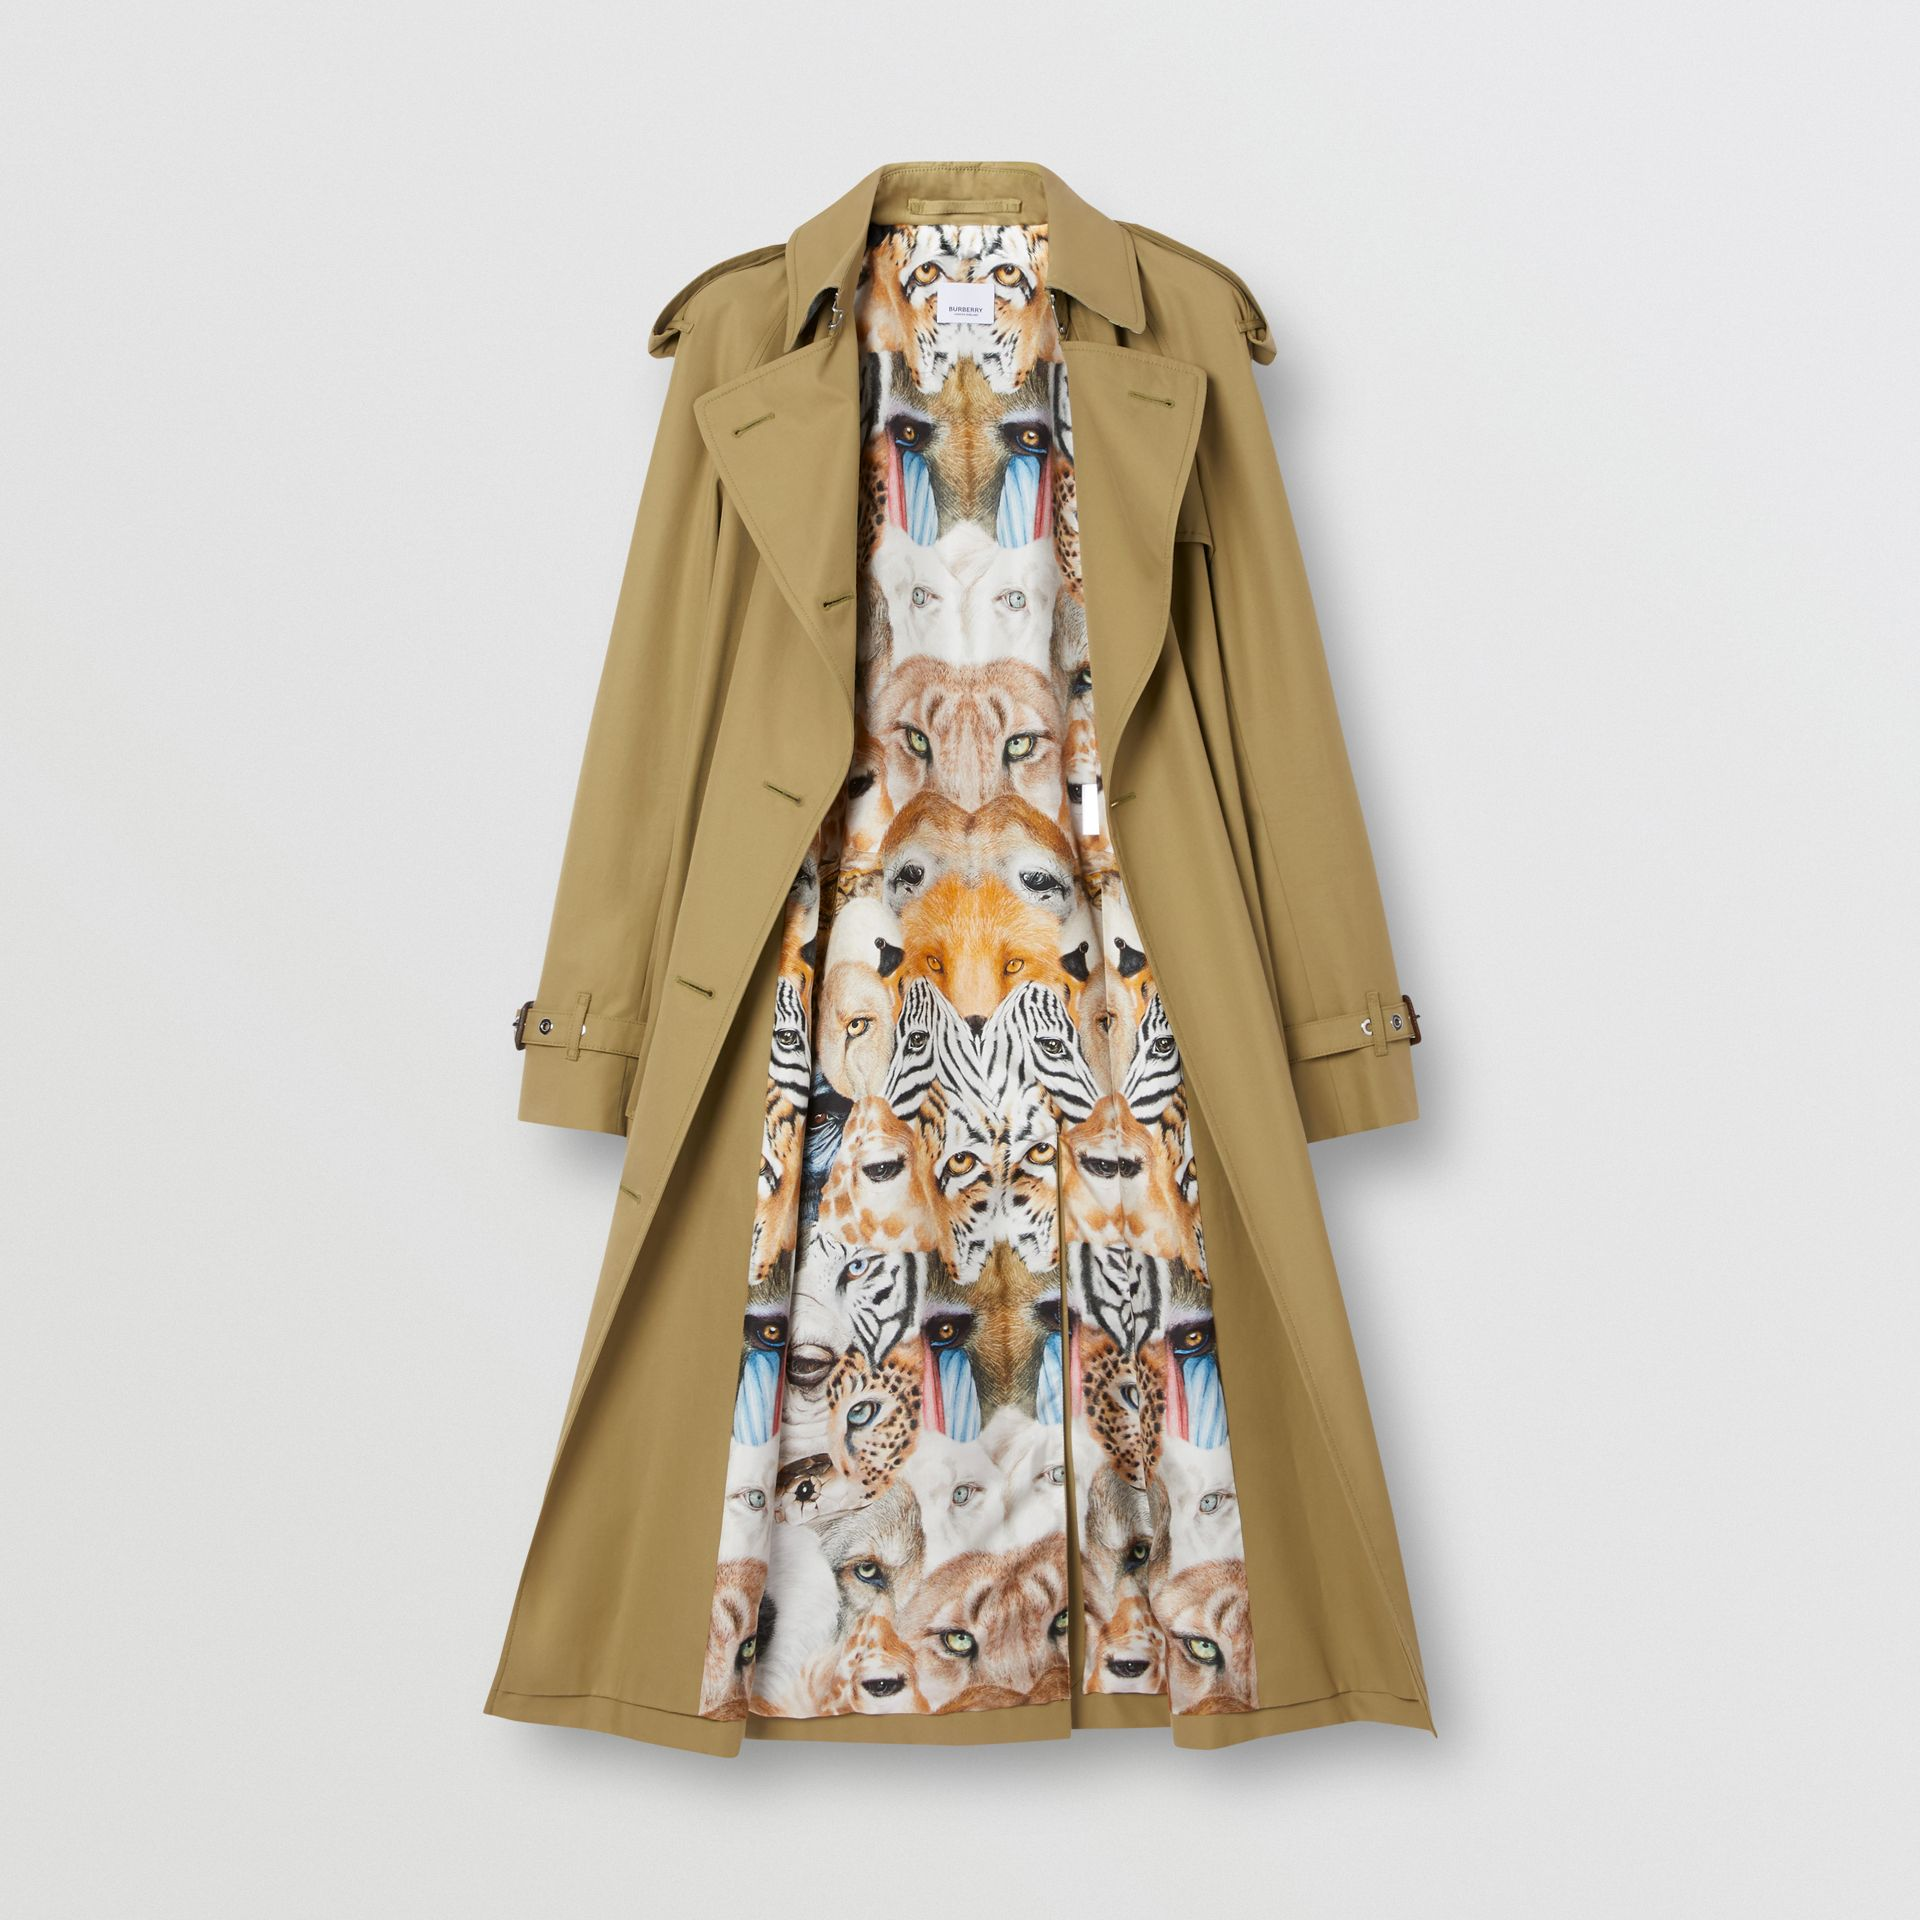 Animalia Print-lined Cotton Gabardine Trench Coat in Rich Olive - Women | Burberry - gallery image 8